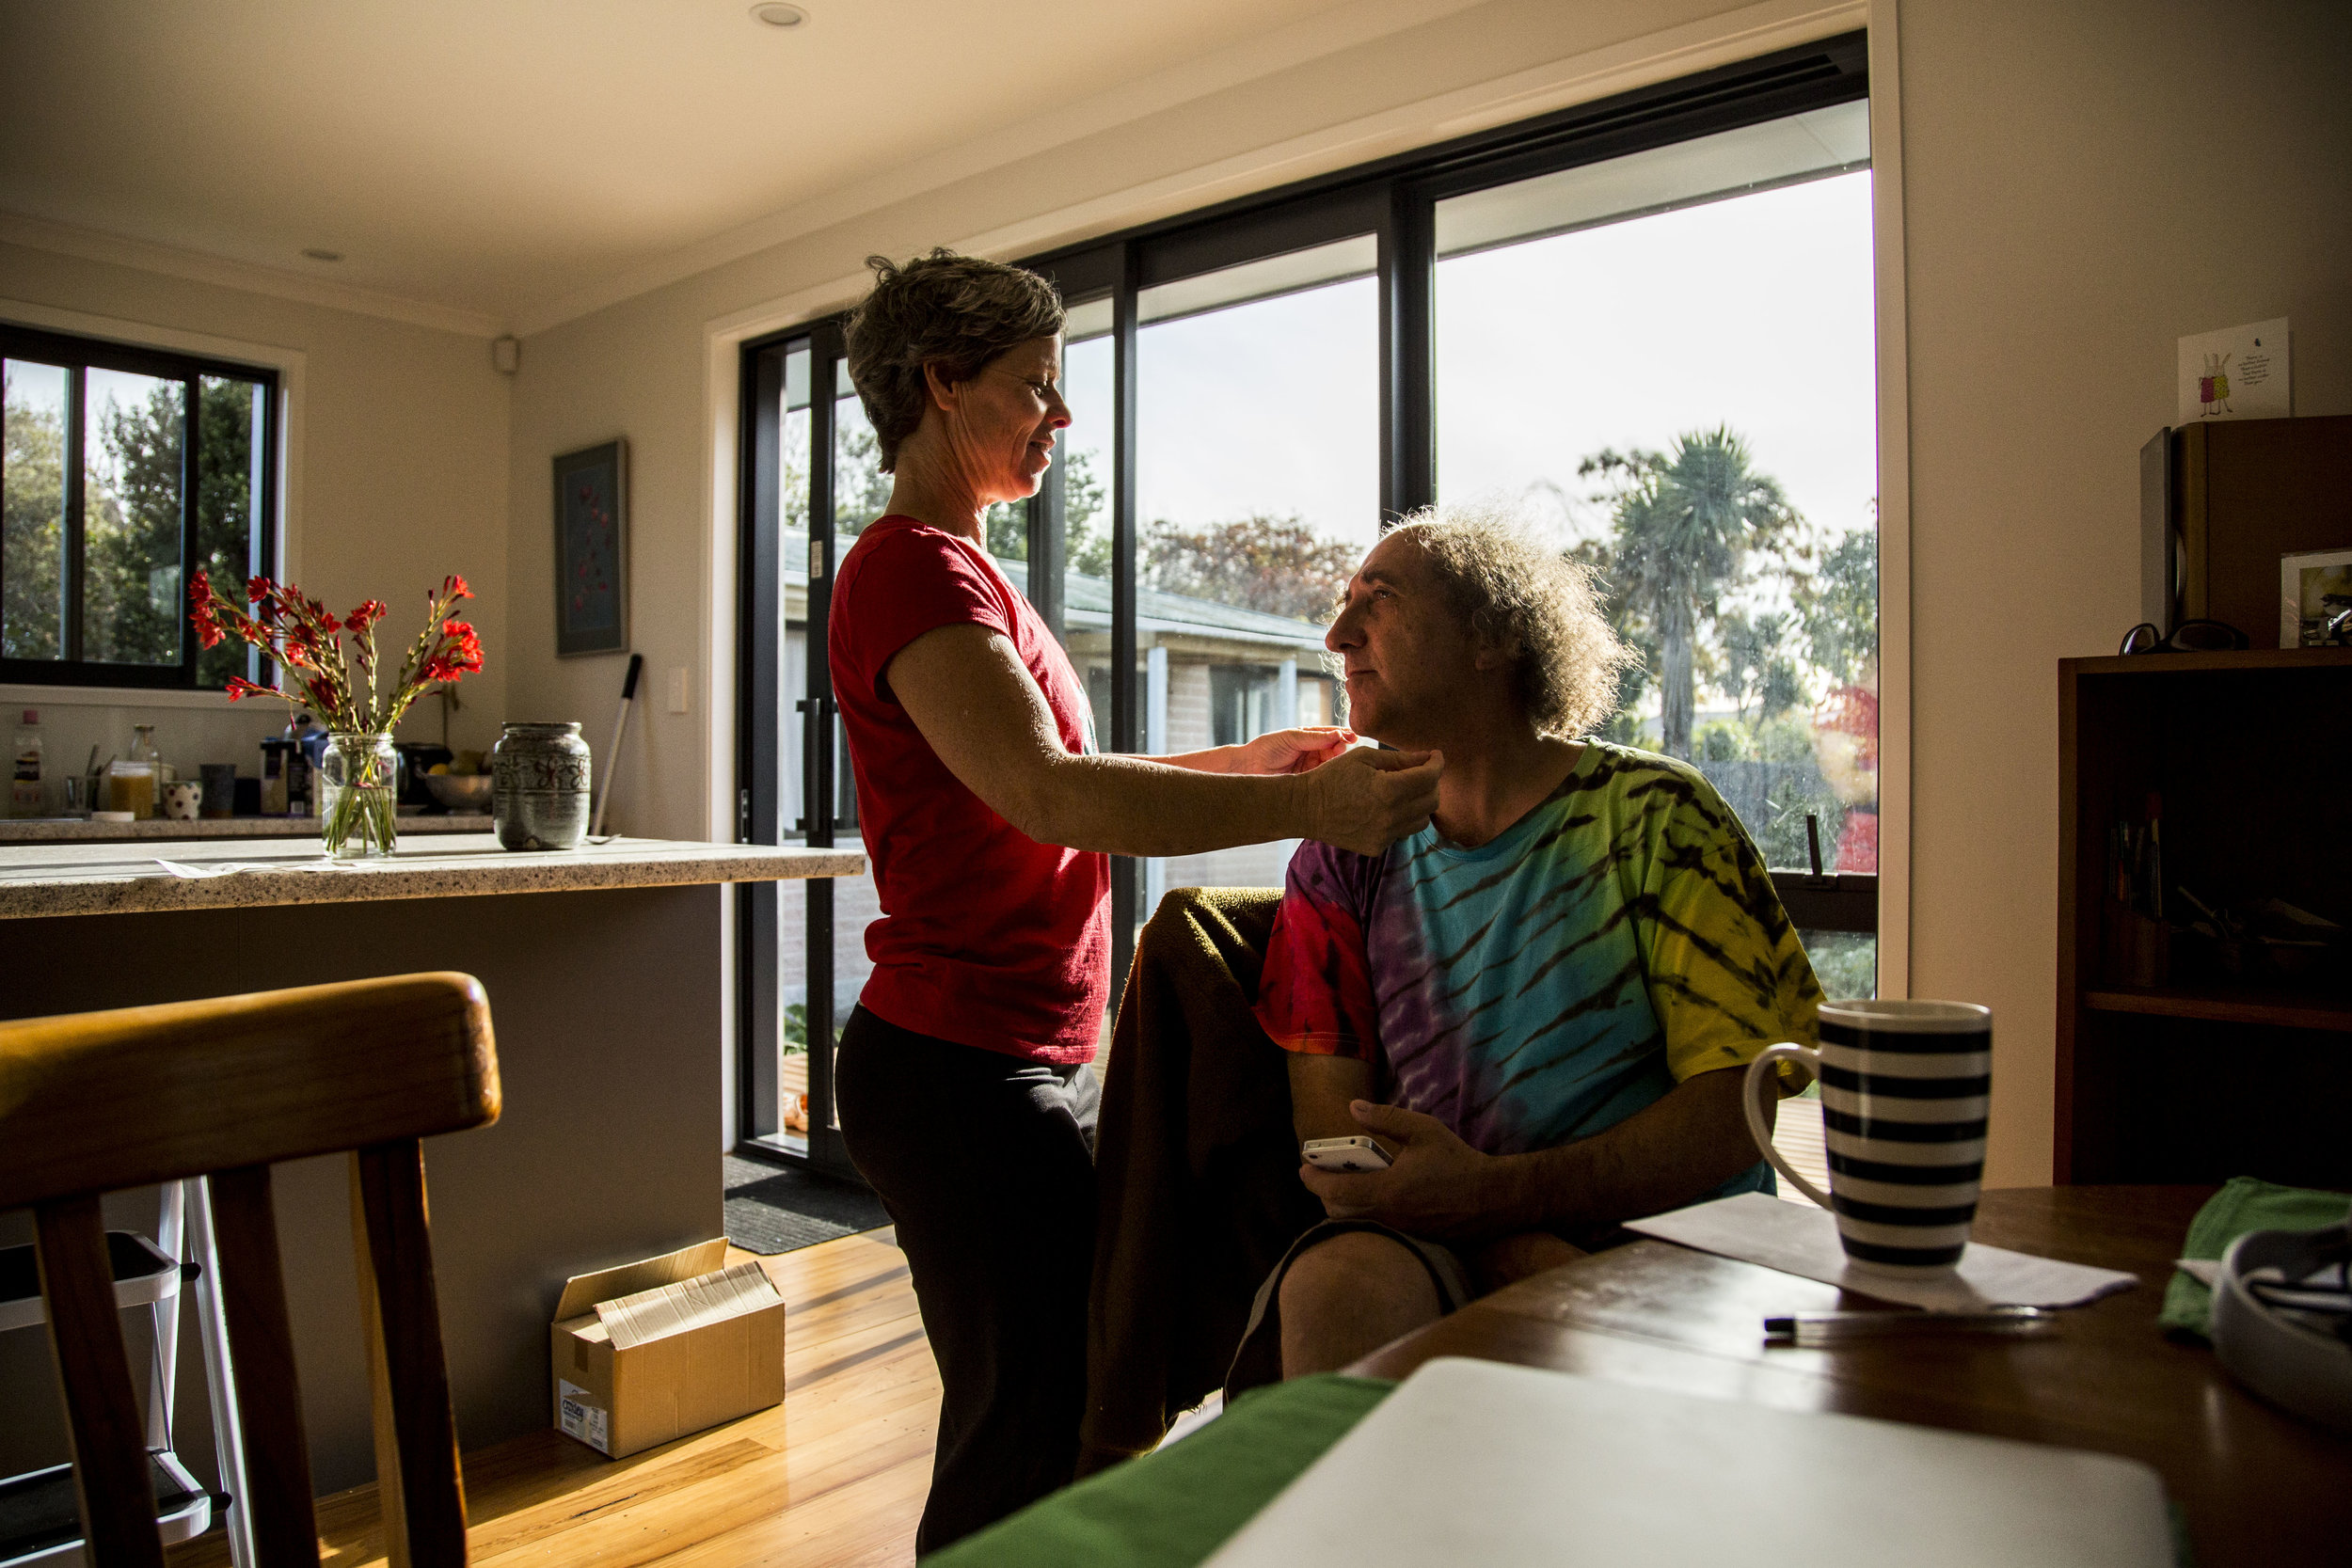 Wingfield (left) and Carrow (right) embrace in their Christchurch, NZ home on May 3, 2016. In addition to losing their circus school, their home was also destroyed in the aftermath of the earthquake. They've just recently finished rebuilding their home.